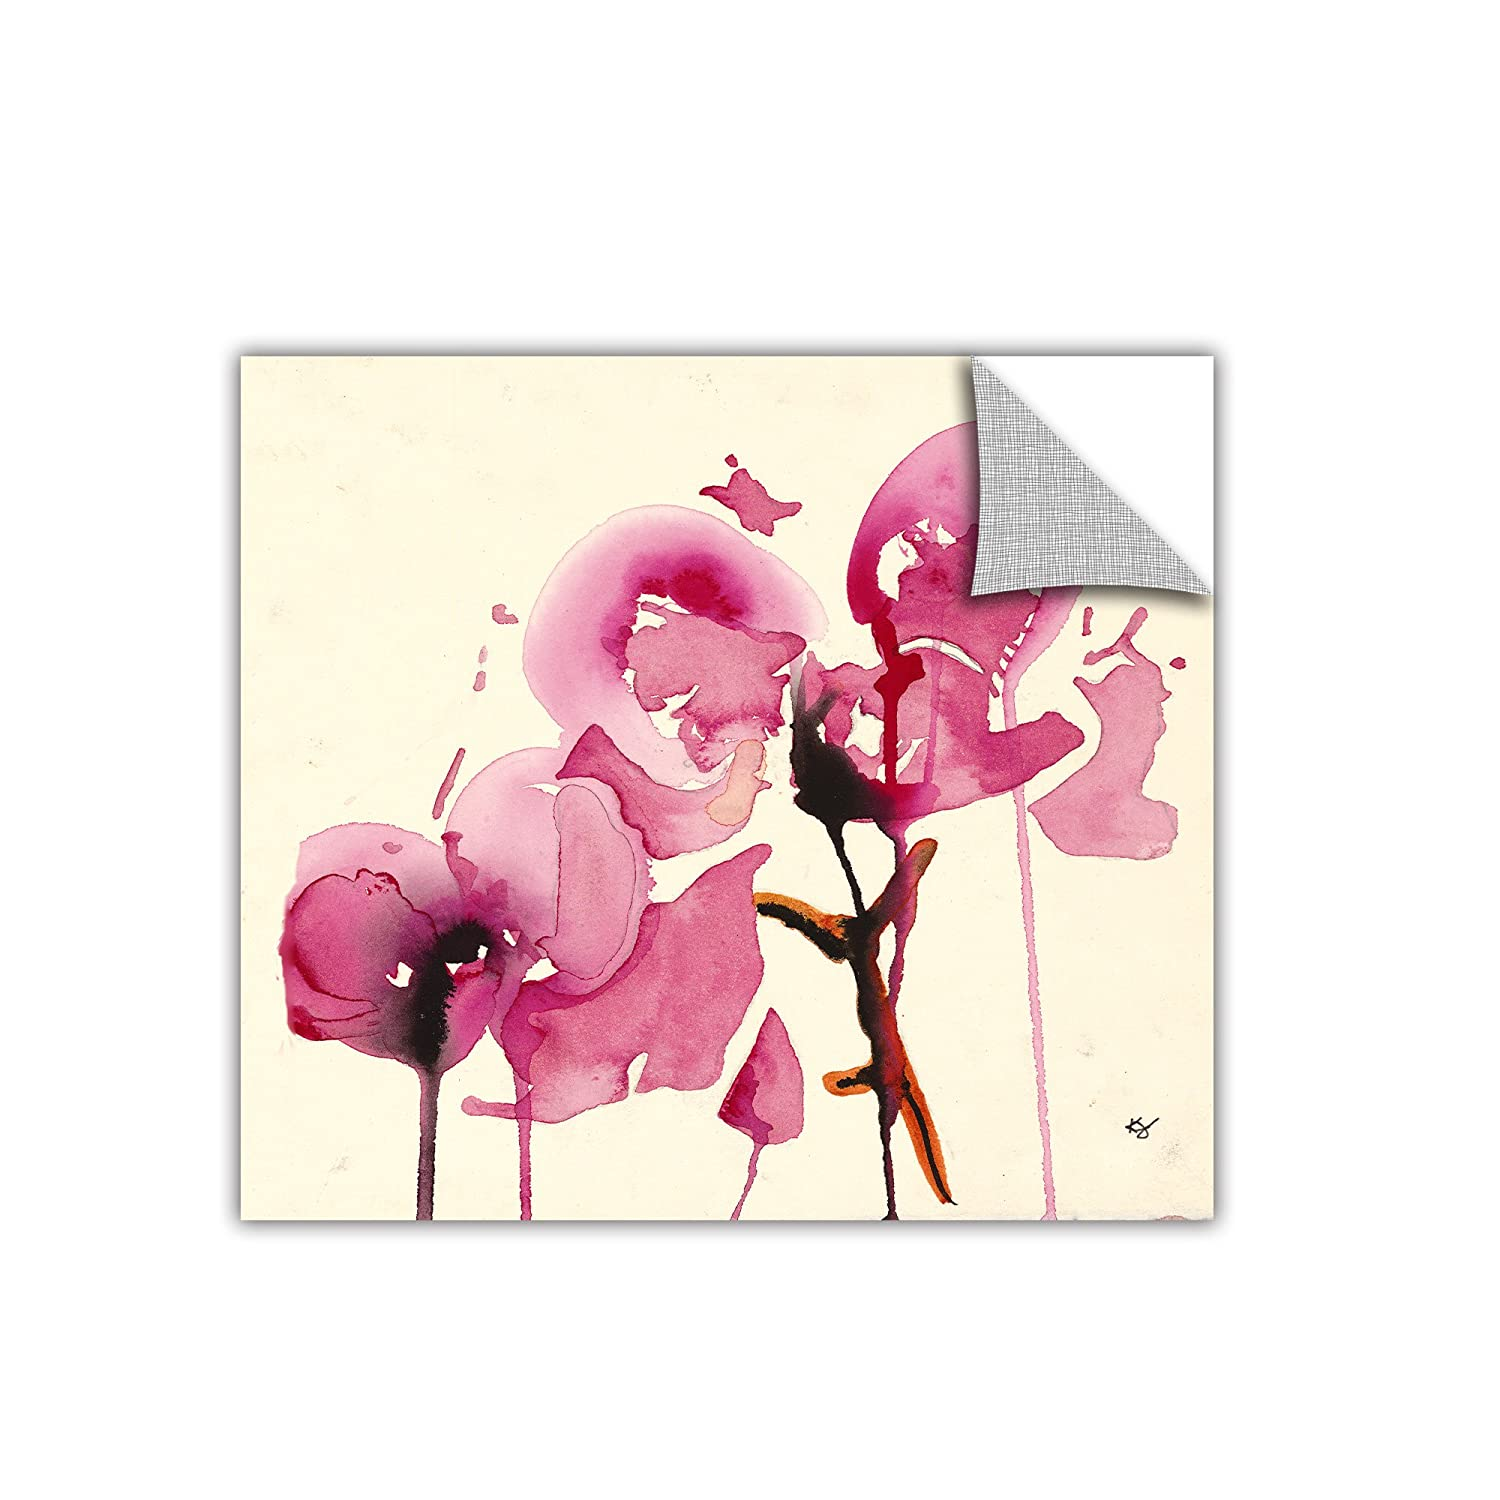 ArtWall Appealz Karin Johanneson Removable Graphic Wall Art Orchids I 18 by 18-Inch